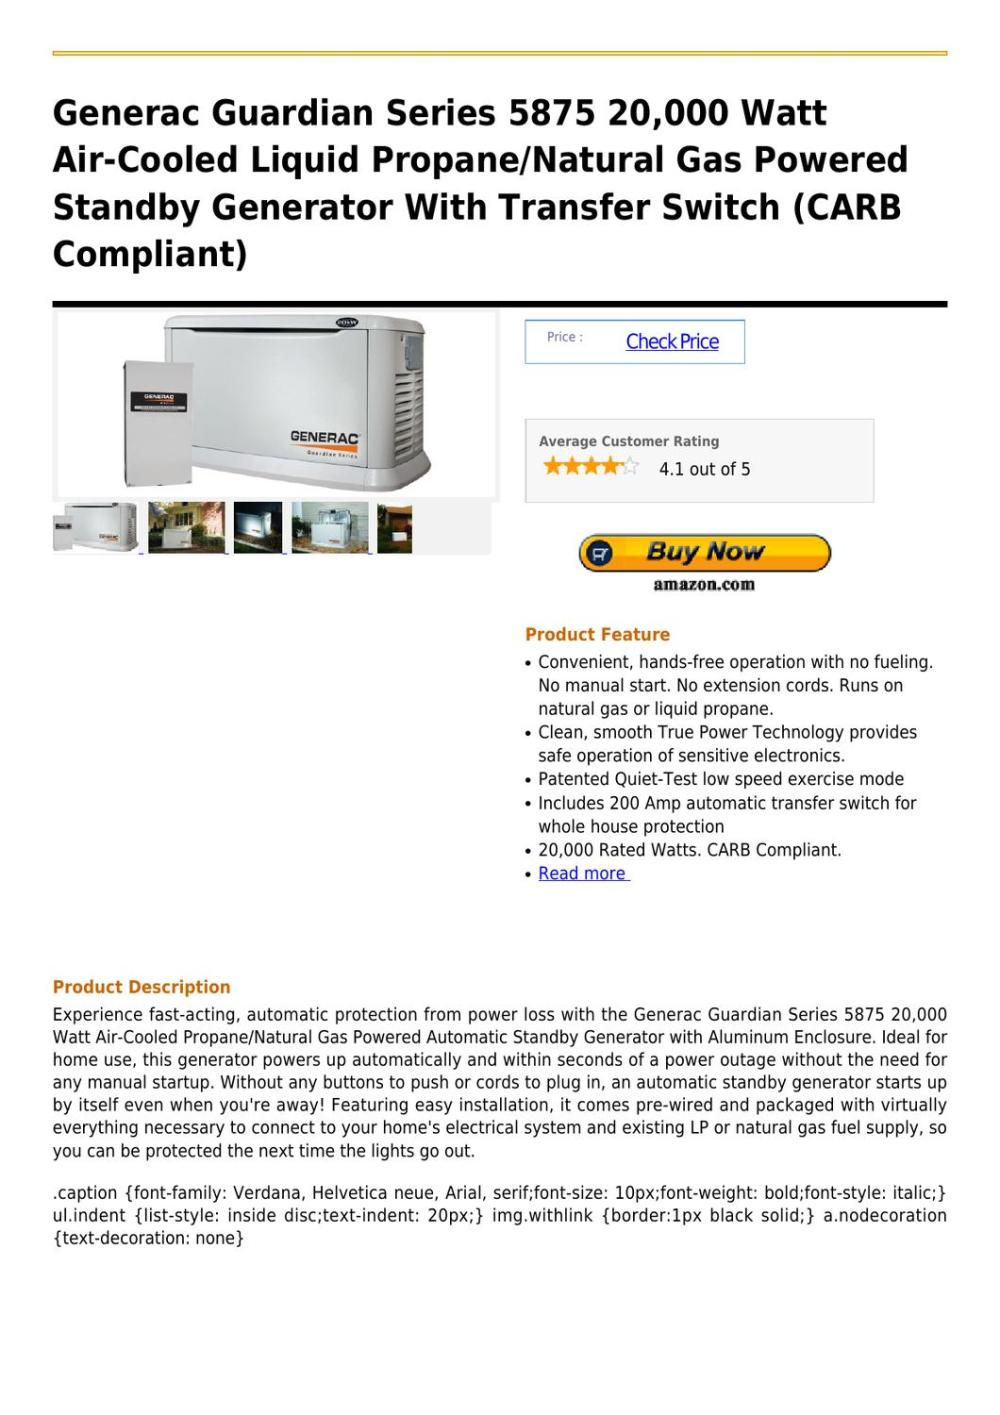 medium resolution of generac guardian series 5875 20 000 watt air cooled liquid propane natural gas powered standby gener